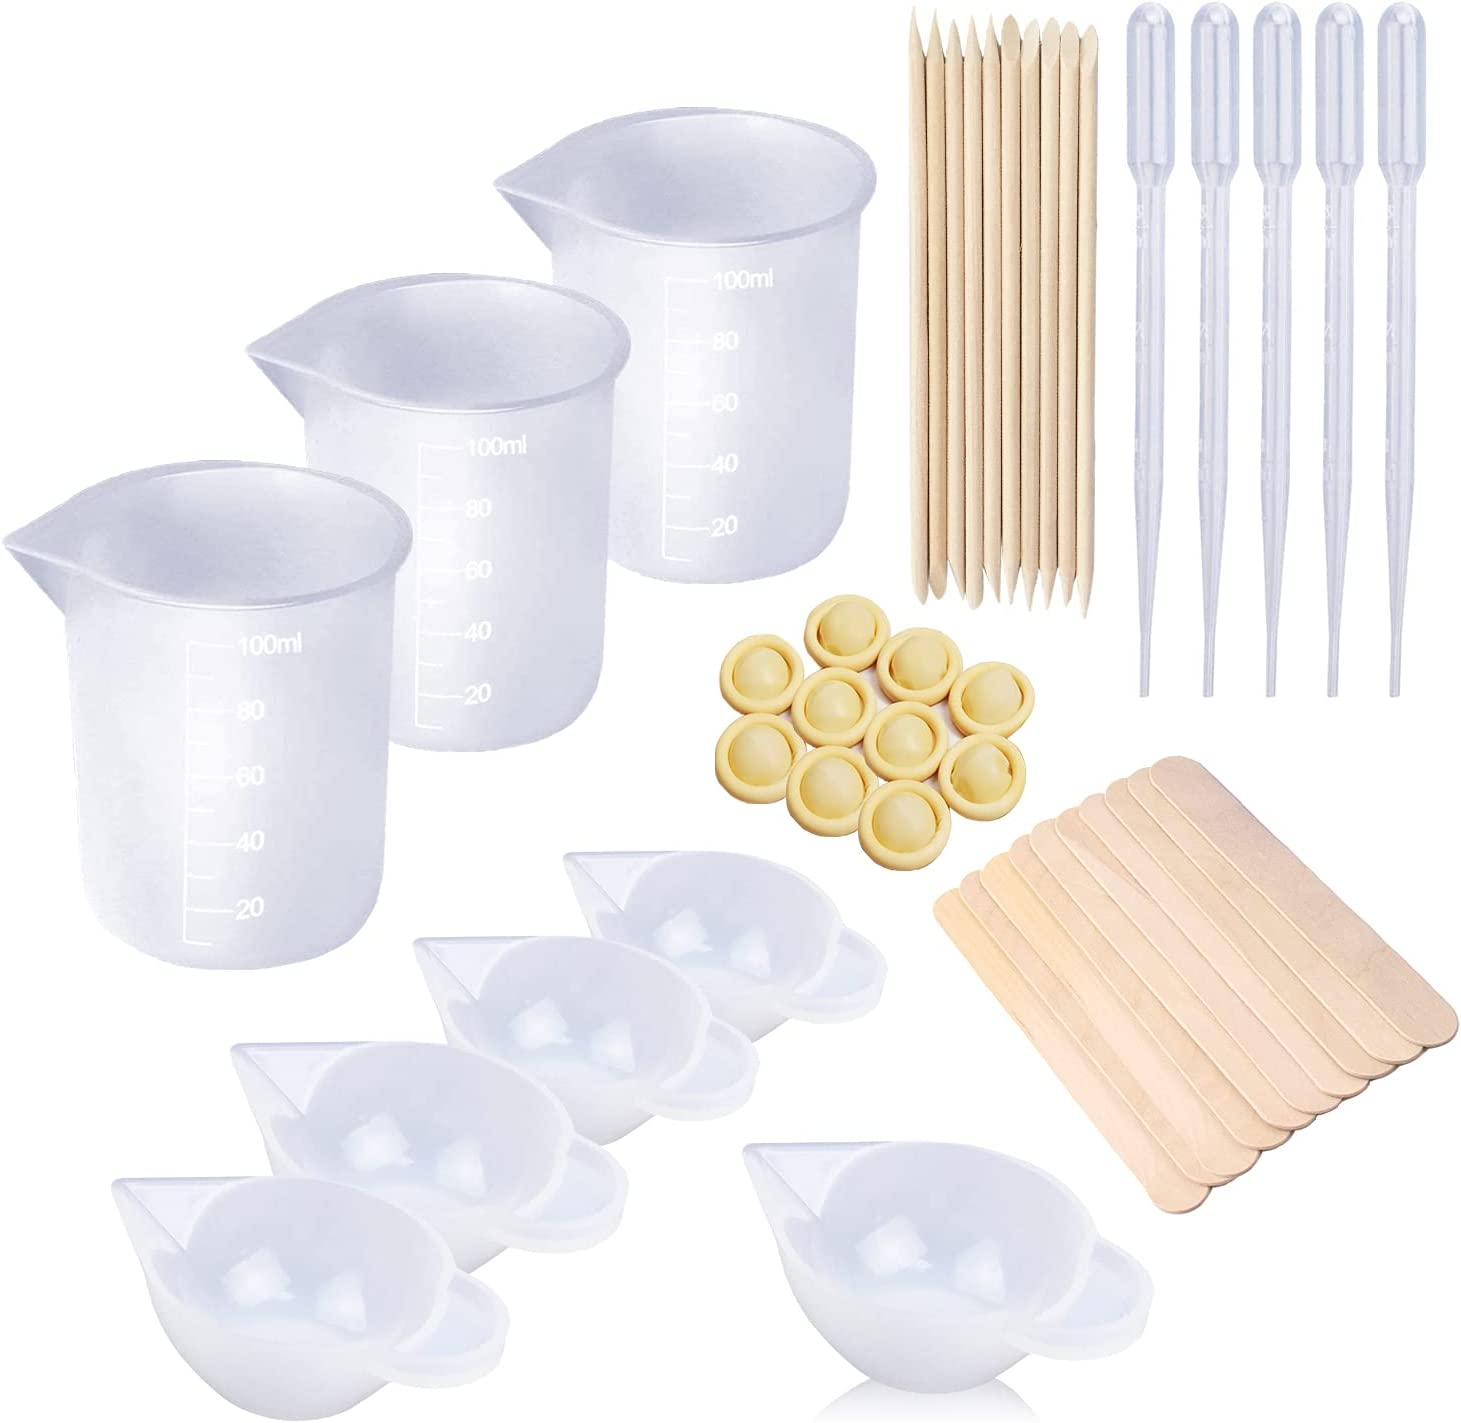 List price LET'S RESIN 8PCS Silicone Measuring Cups N Resin 100ml Attention brand for 10ml